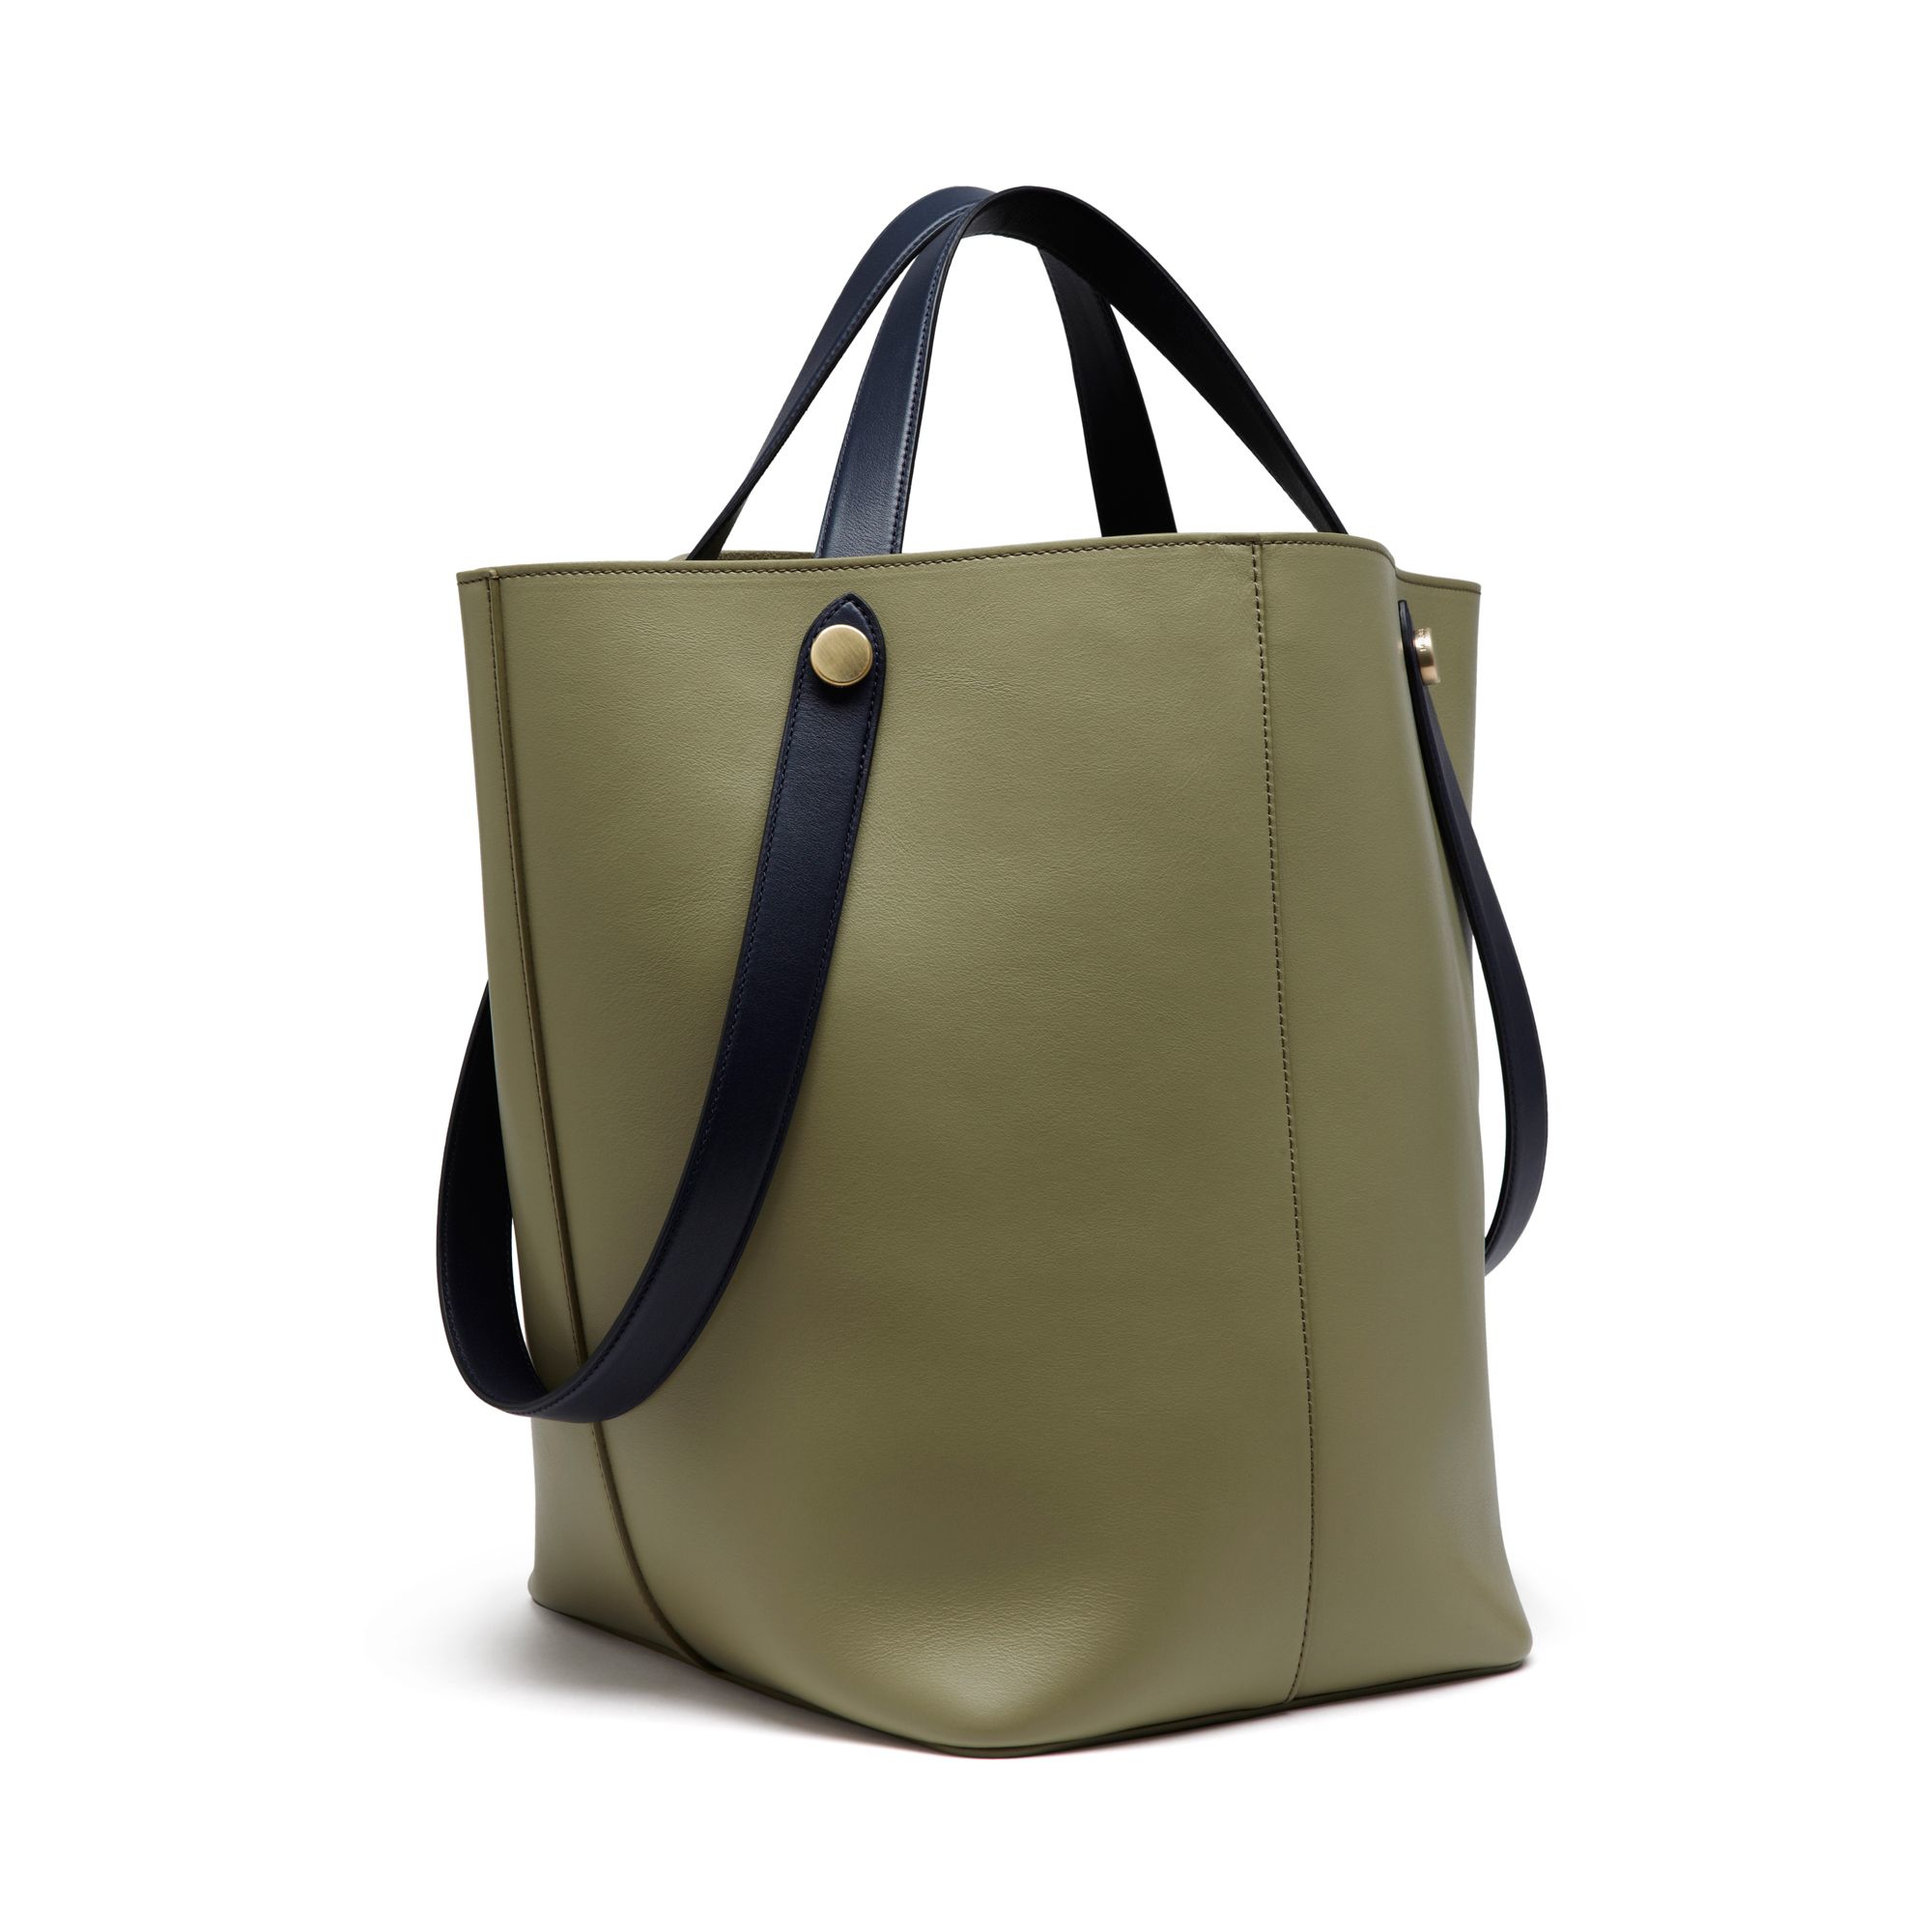 bd555cb44e ... bag 3dcc3 51a15 switzerland lyst mulberry kite leather tote in natural  6308f 422b0 ...